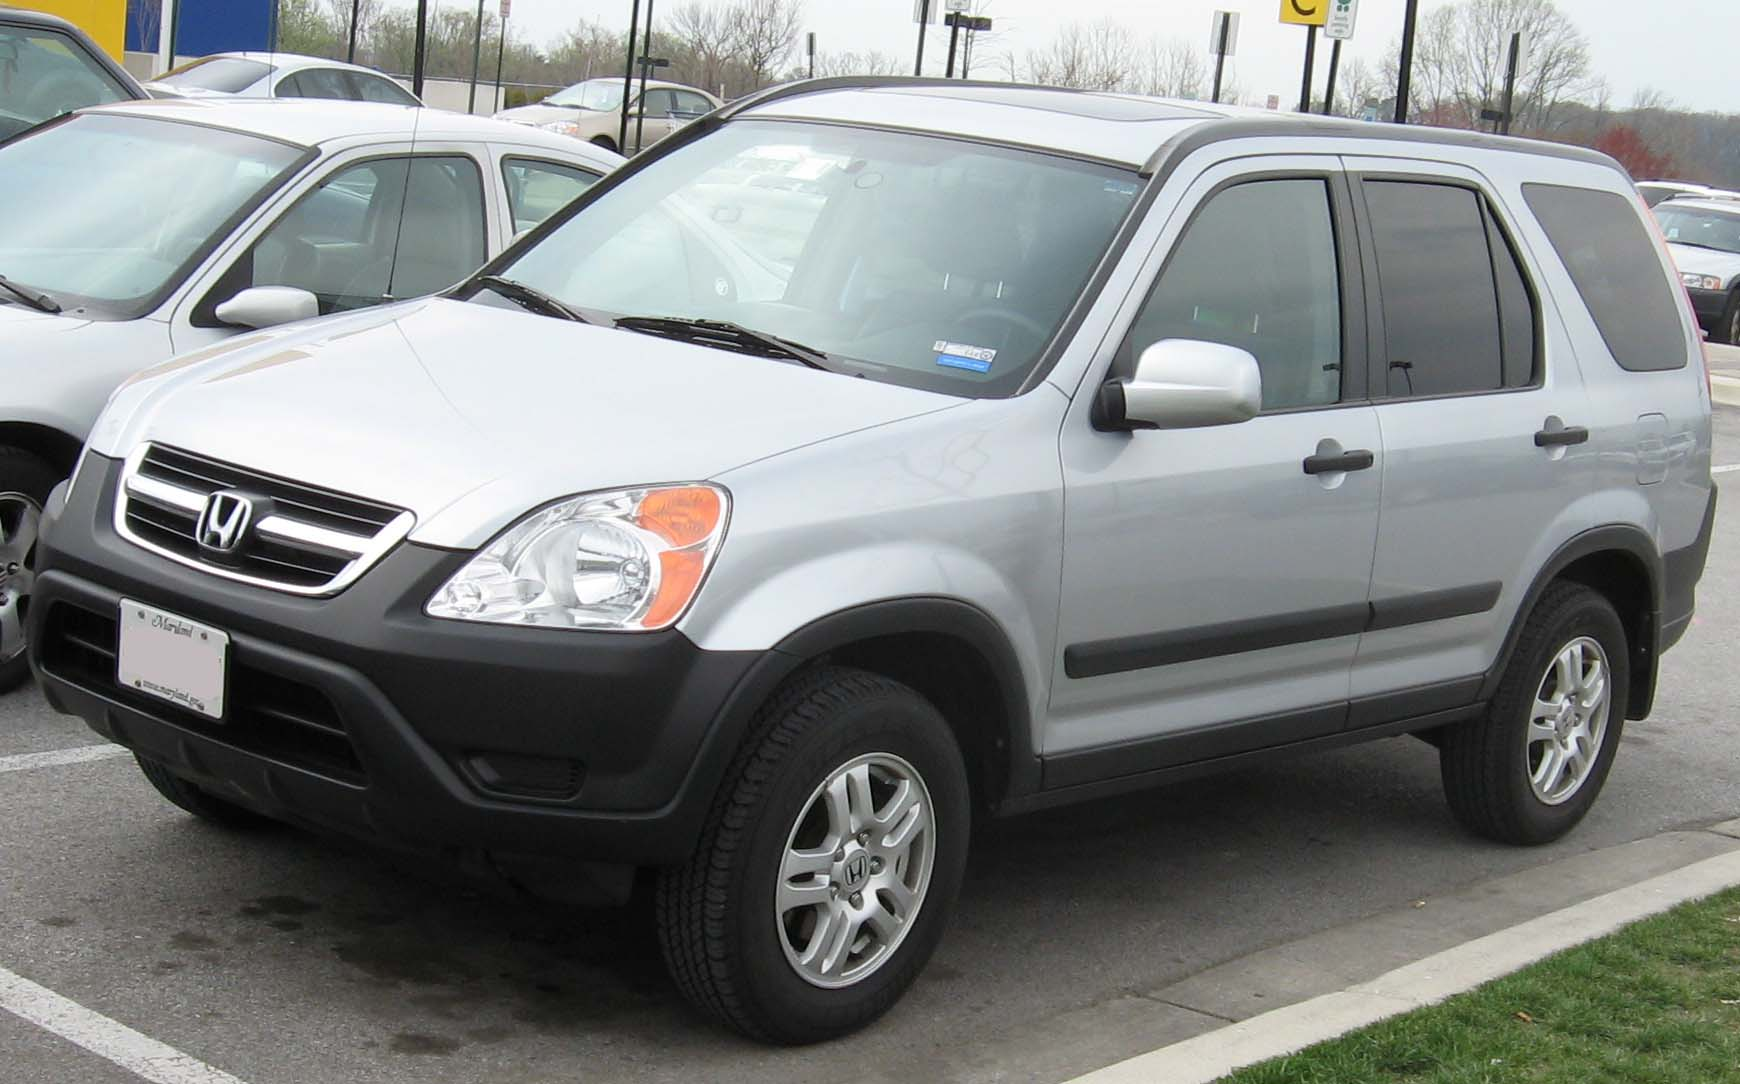 File:2002-2004 Honda CR-V.jpg